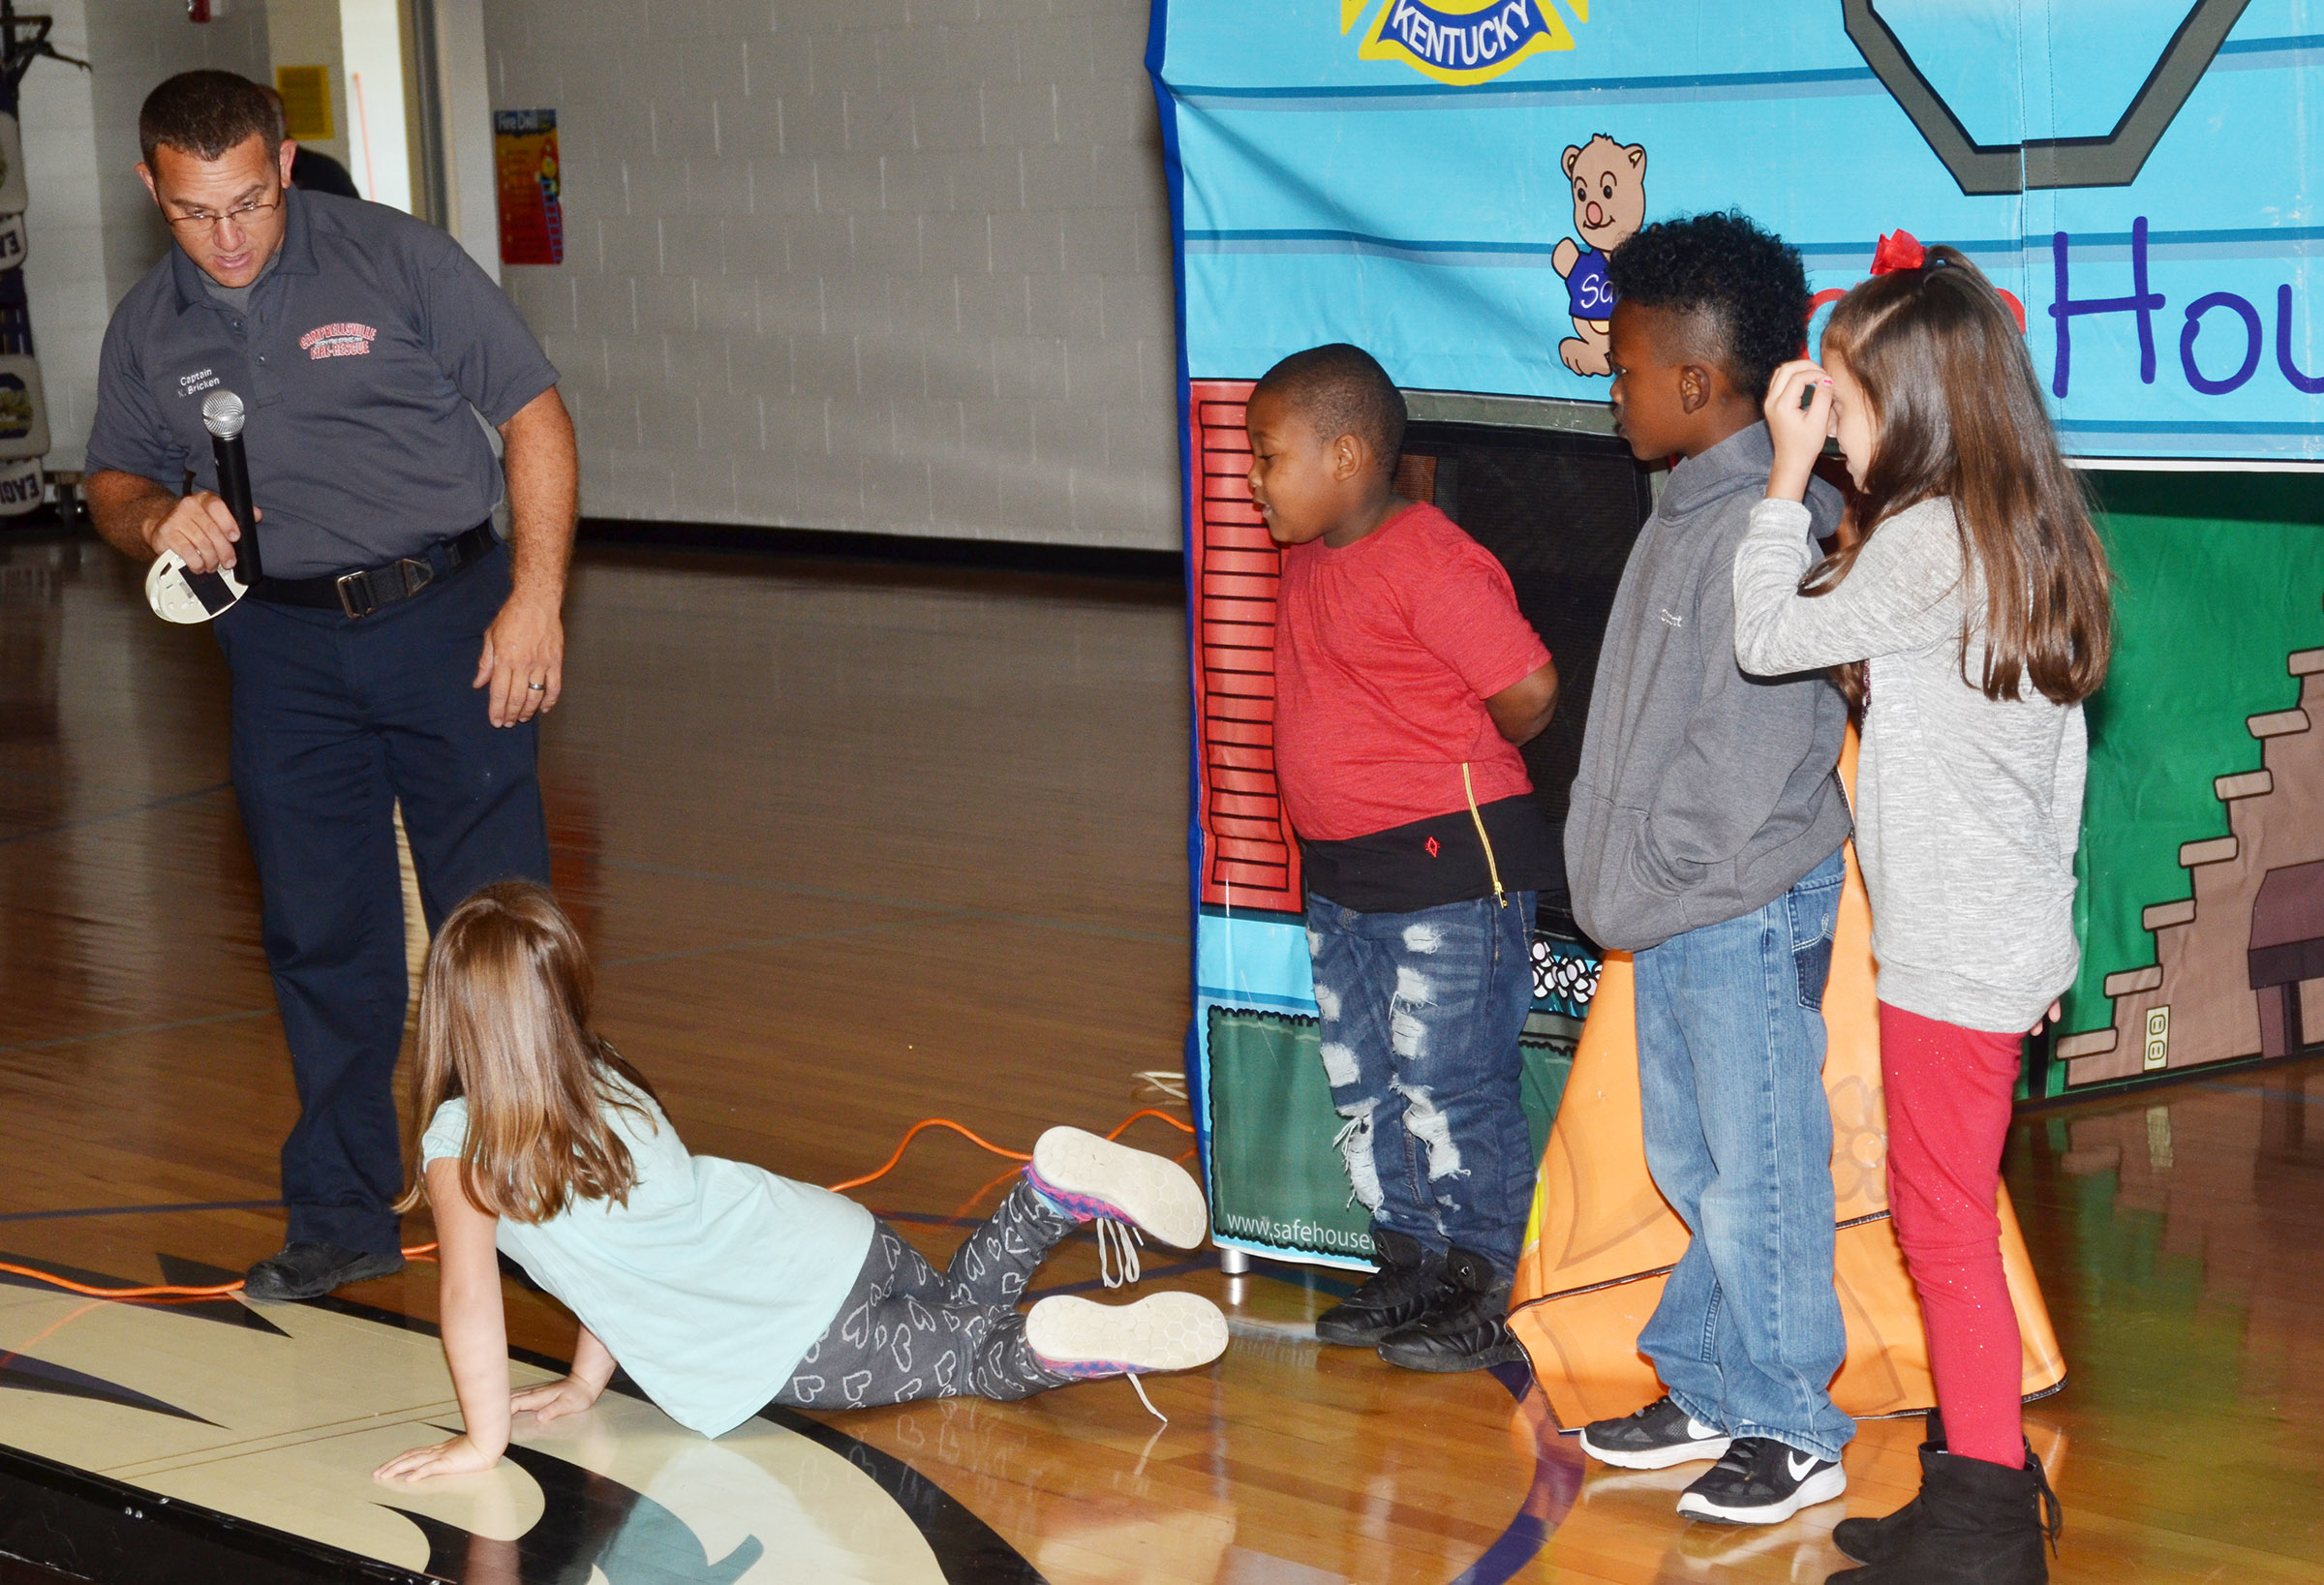 Campbellsville Fire & Rescue Captain Keith Bricken helps CES students, from left, first-graders Natalee Shaw and Malachi Conner and second-graders Drelynn Hollins and Lillian Martin learn the proper way to leave a home when a smoke detector sounds.